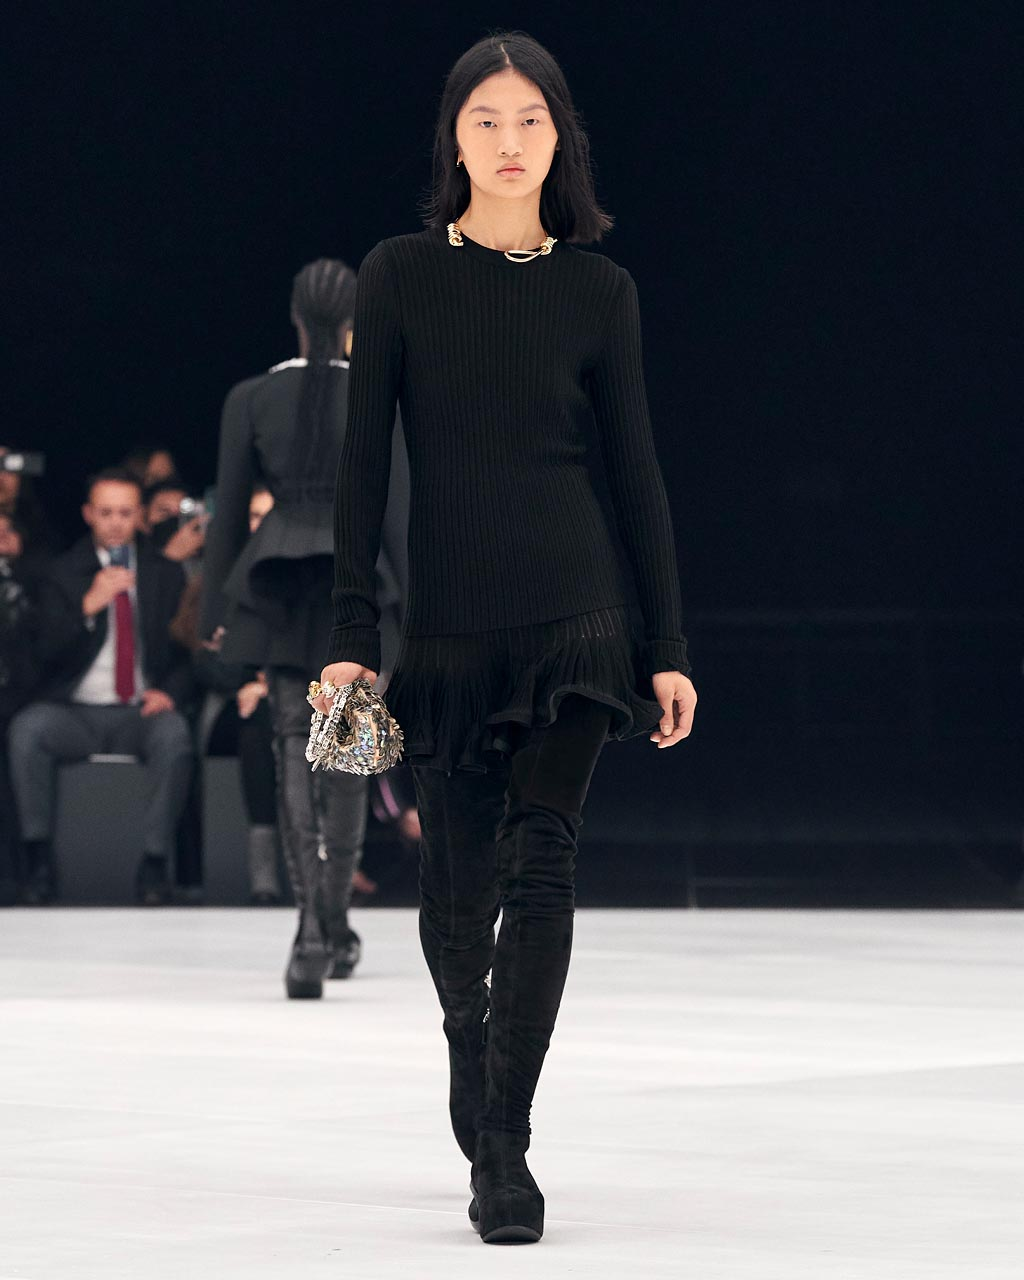 Spring Summer 2022 collection Look 10